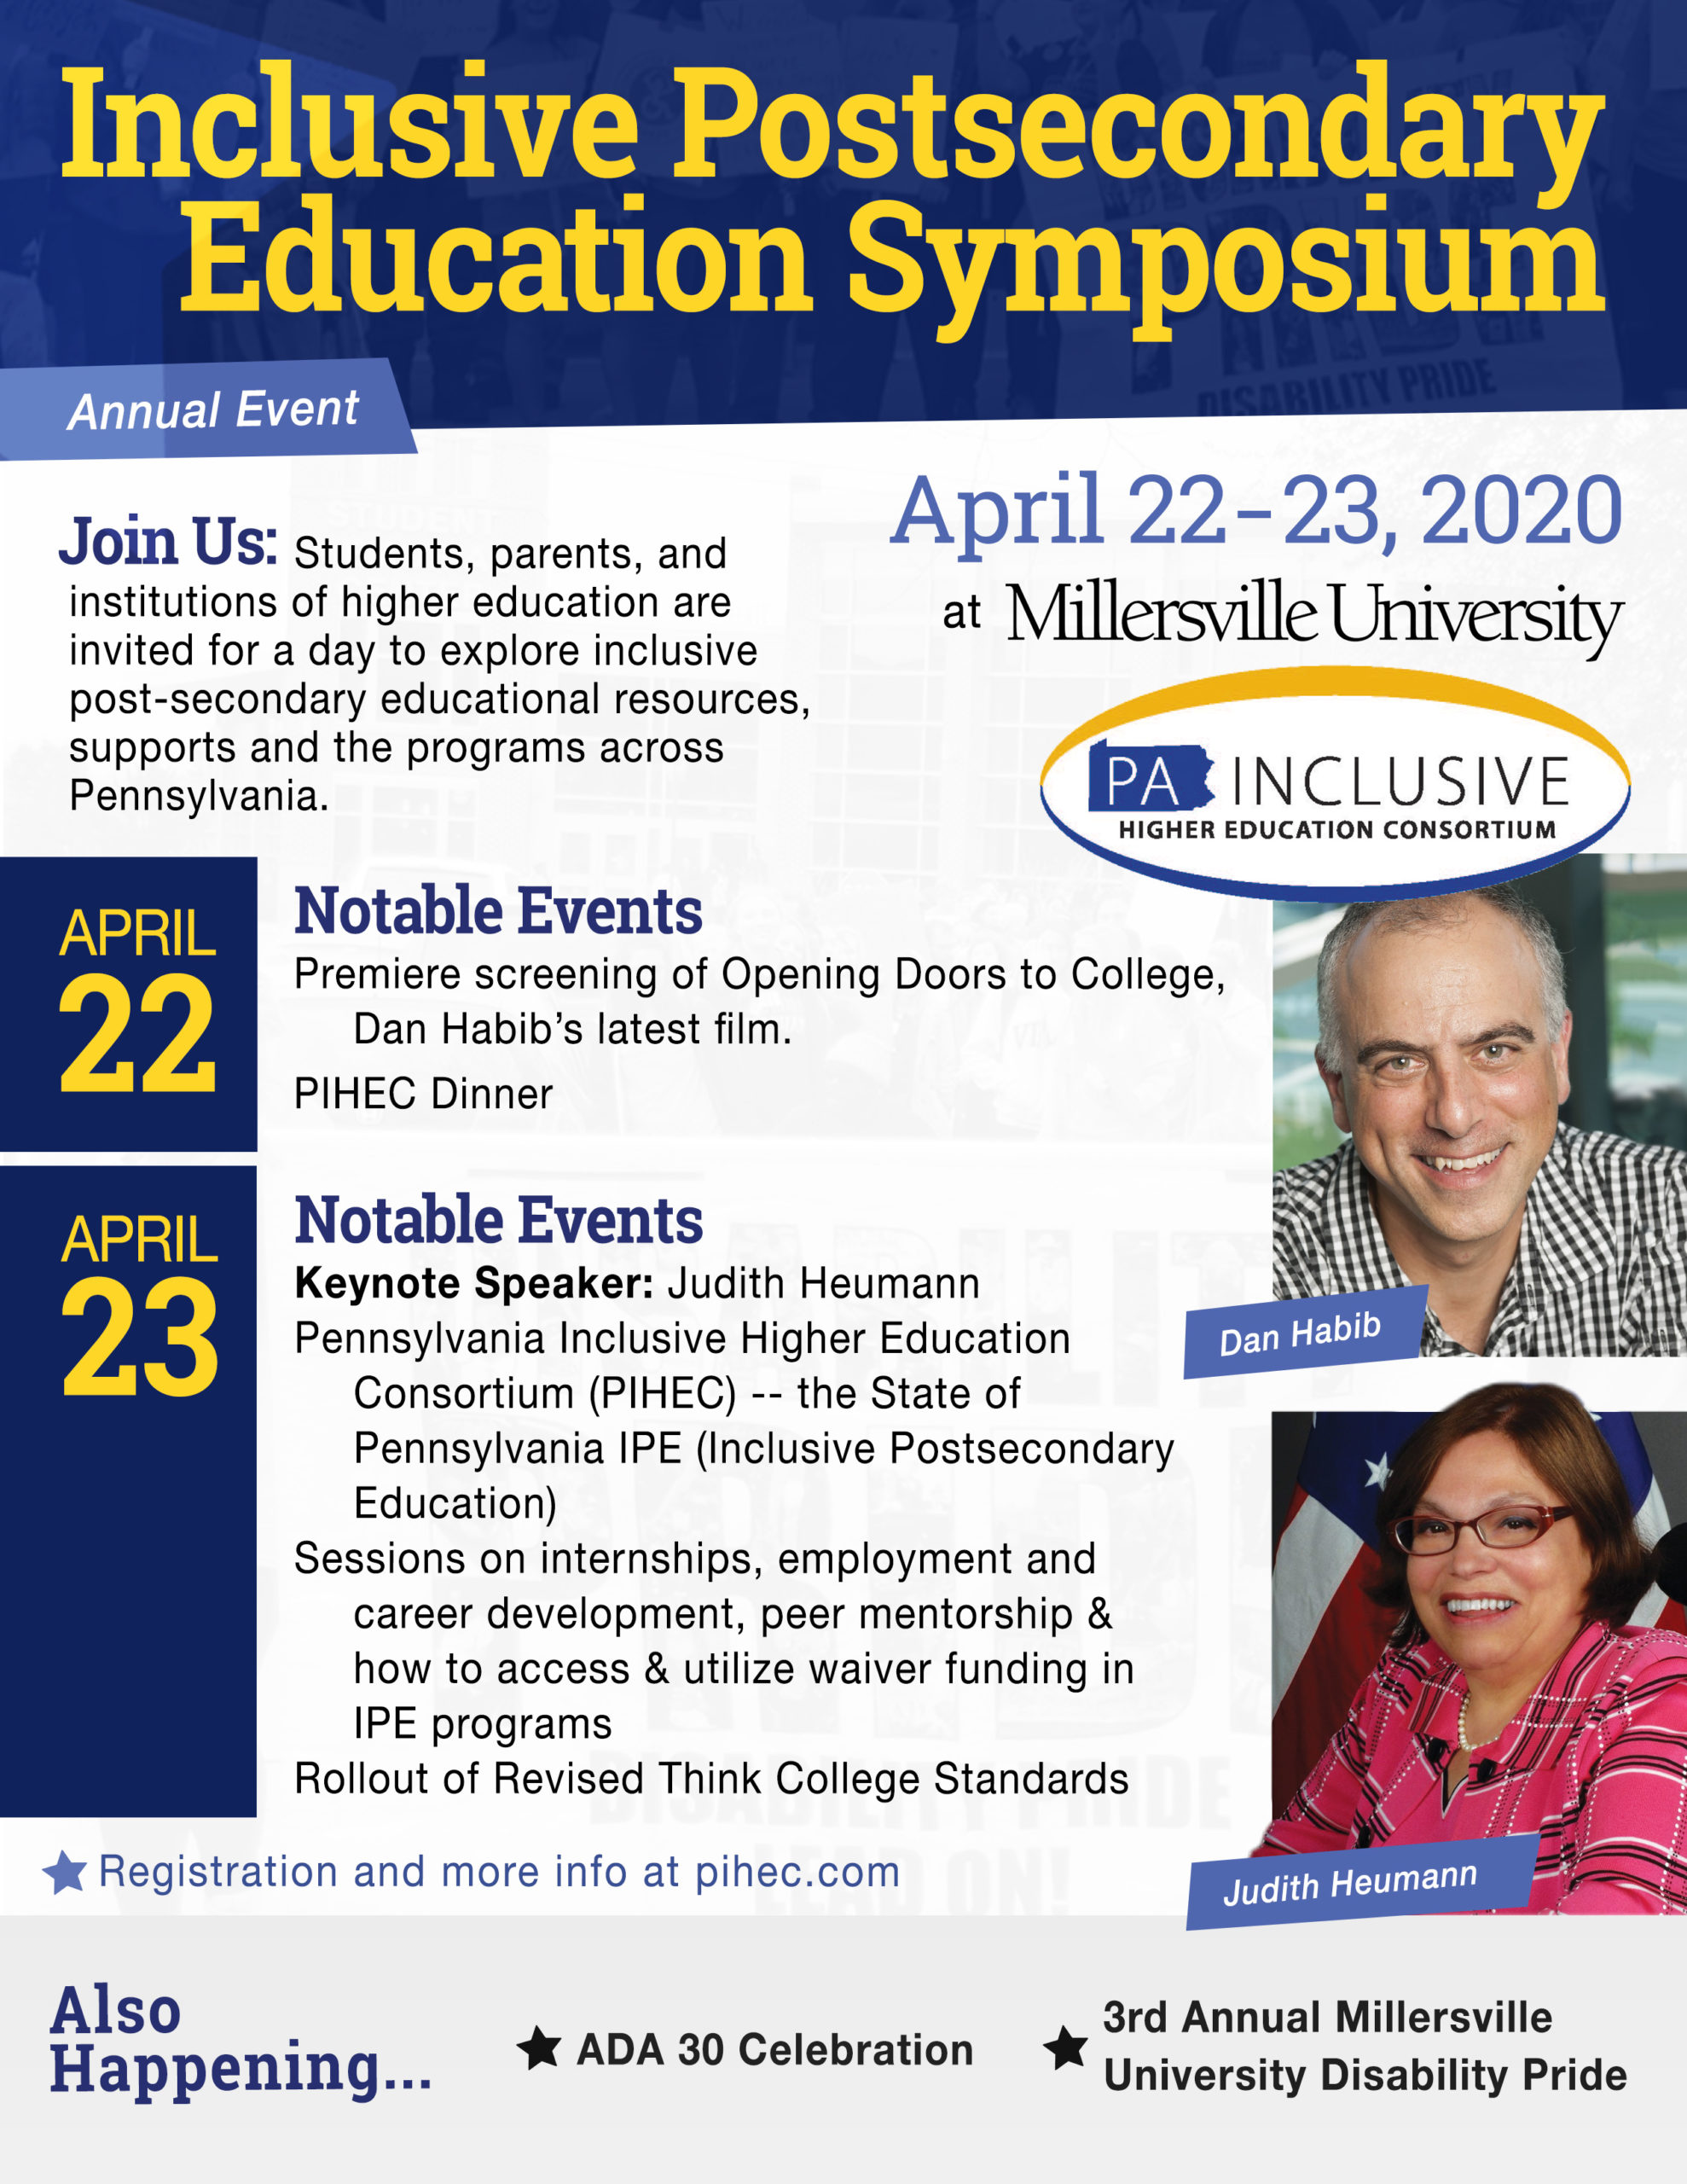 Inclusive Postsecondary Education Symposium, ADA 30 Celebration, & MU Disability Pride!